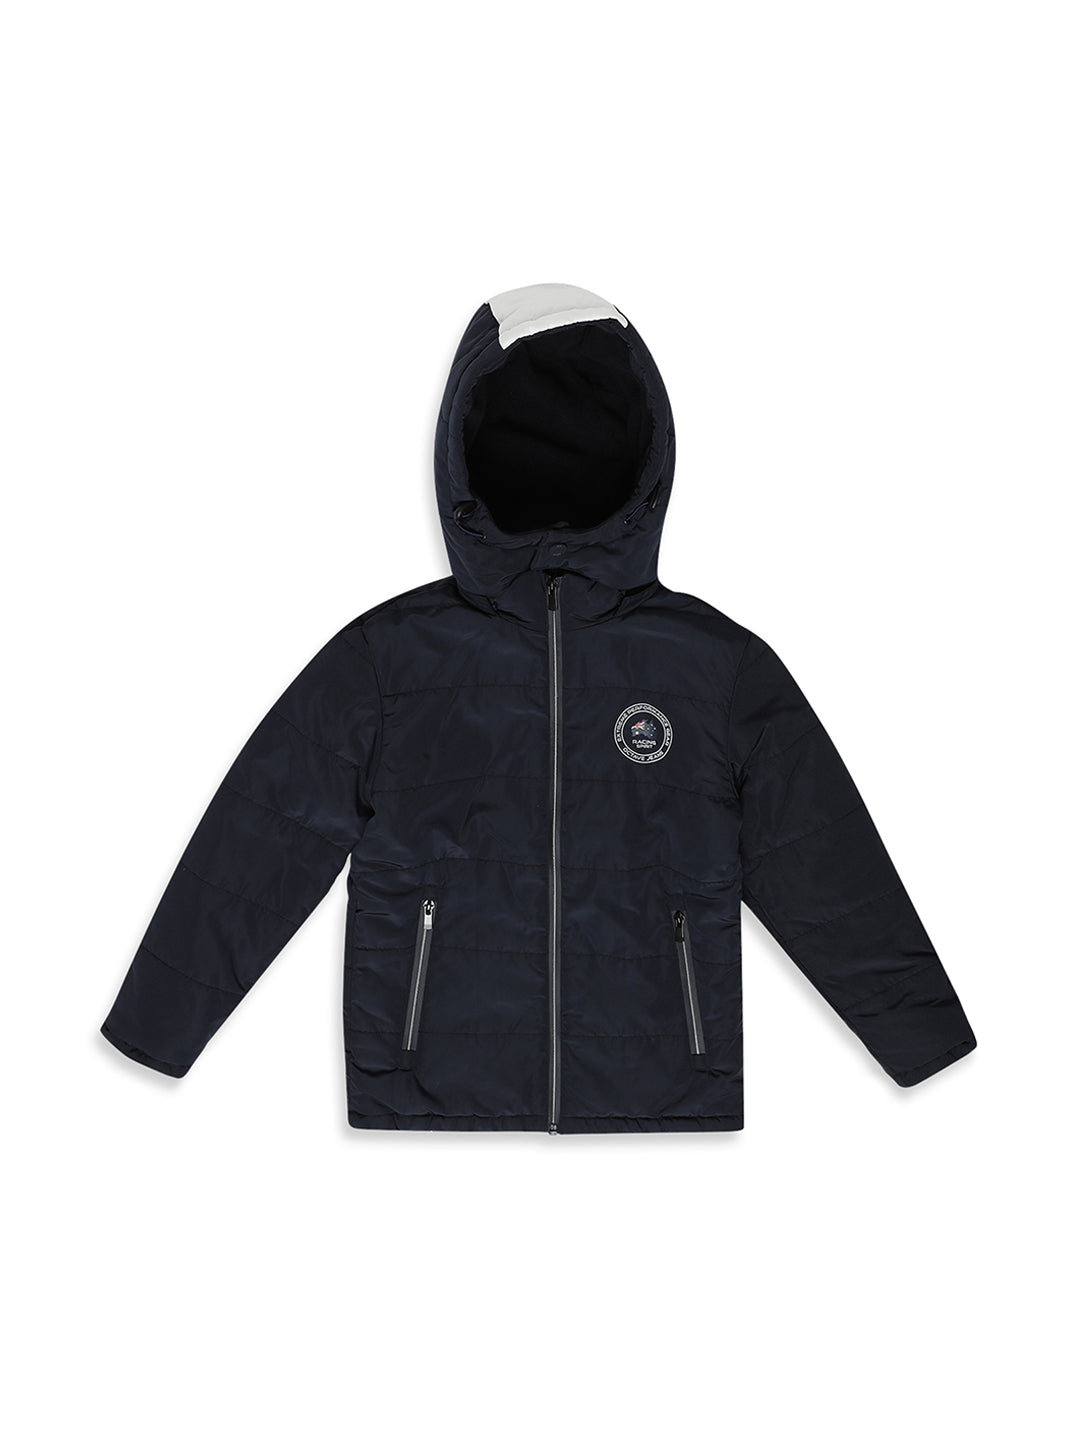 Octave Apparels Navy Jacket for Kids